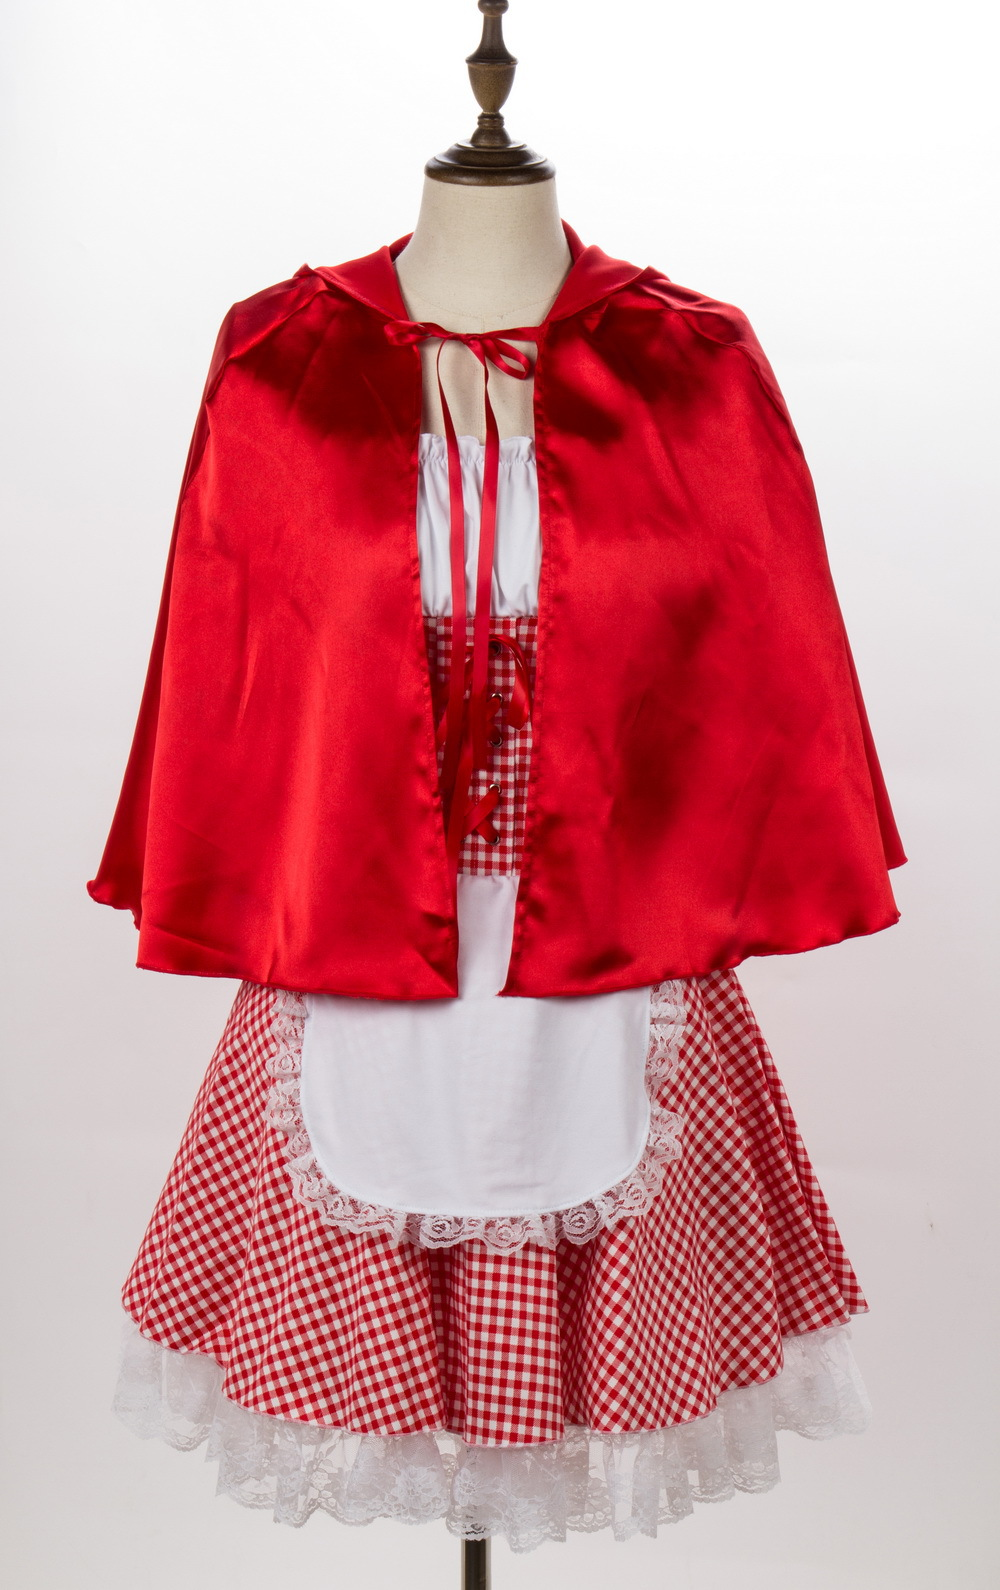 Women Copaly Dress Suit Plaid with Lace Decoration for Halloween Beer Festival  red_3XL